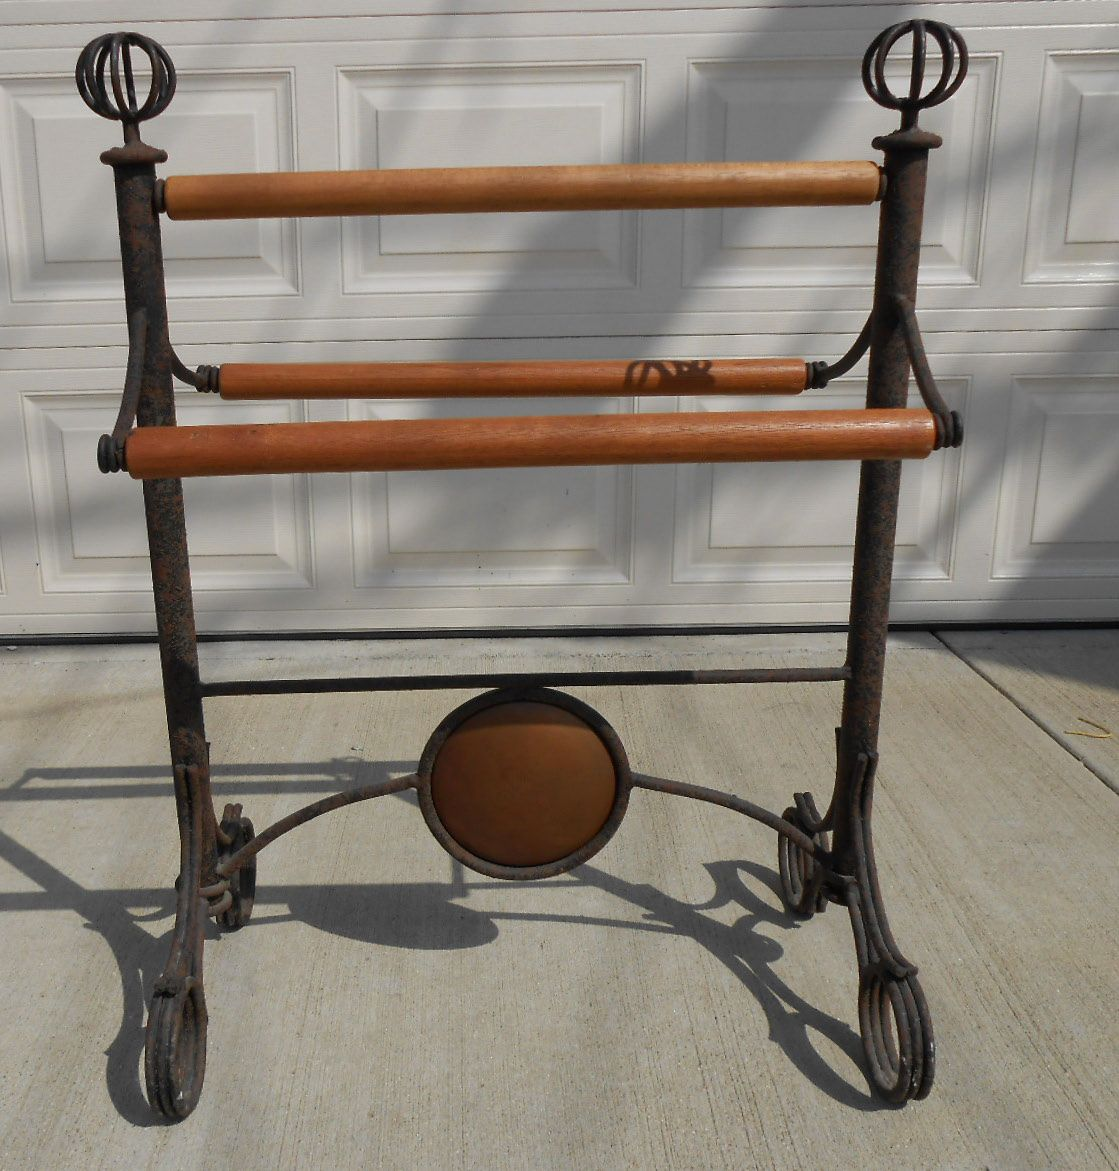 """Antique wrought iron towel rack is 35 ¼"""" tall and 28x16 ¼"""" for $125 ..."""